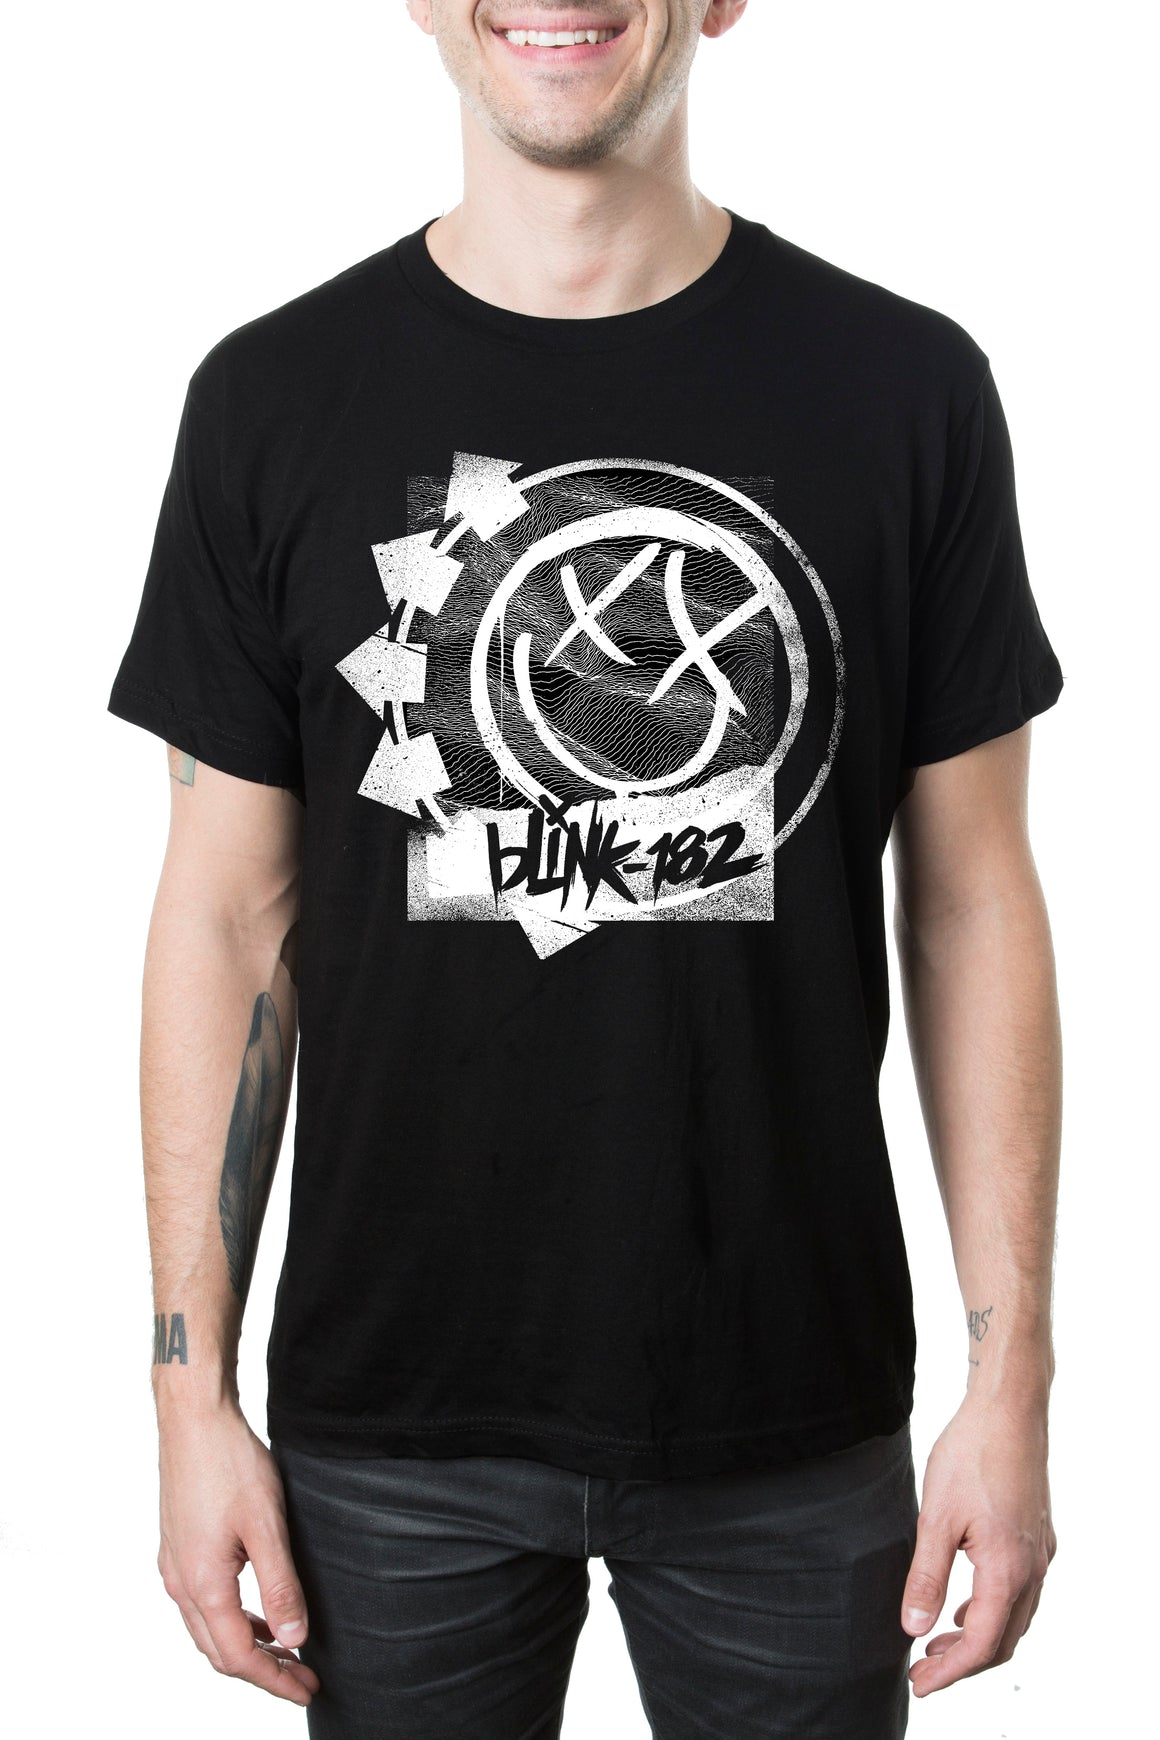 blink182 Rippled Tee Black